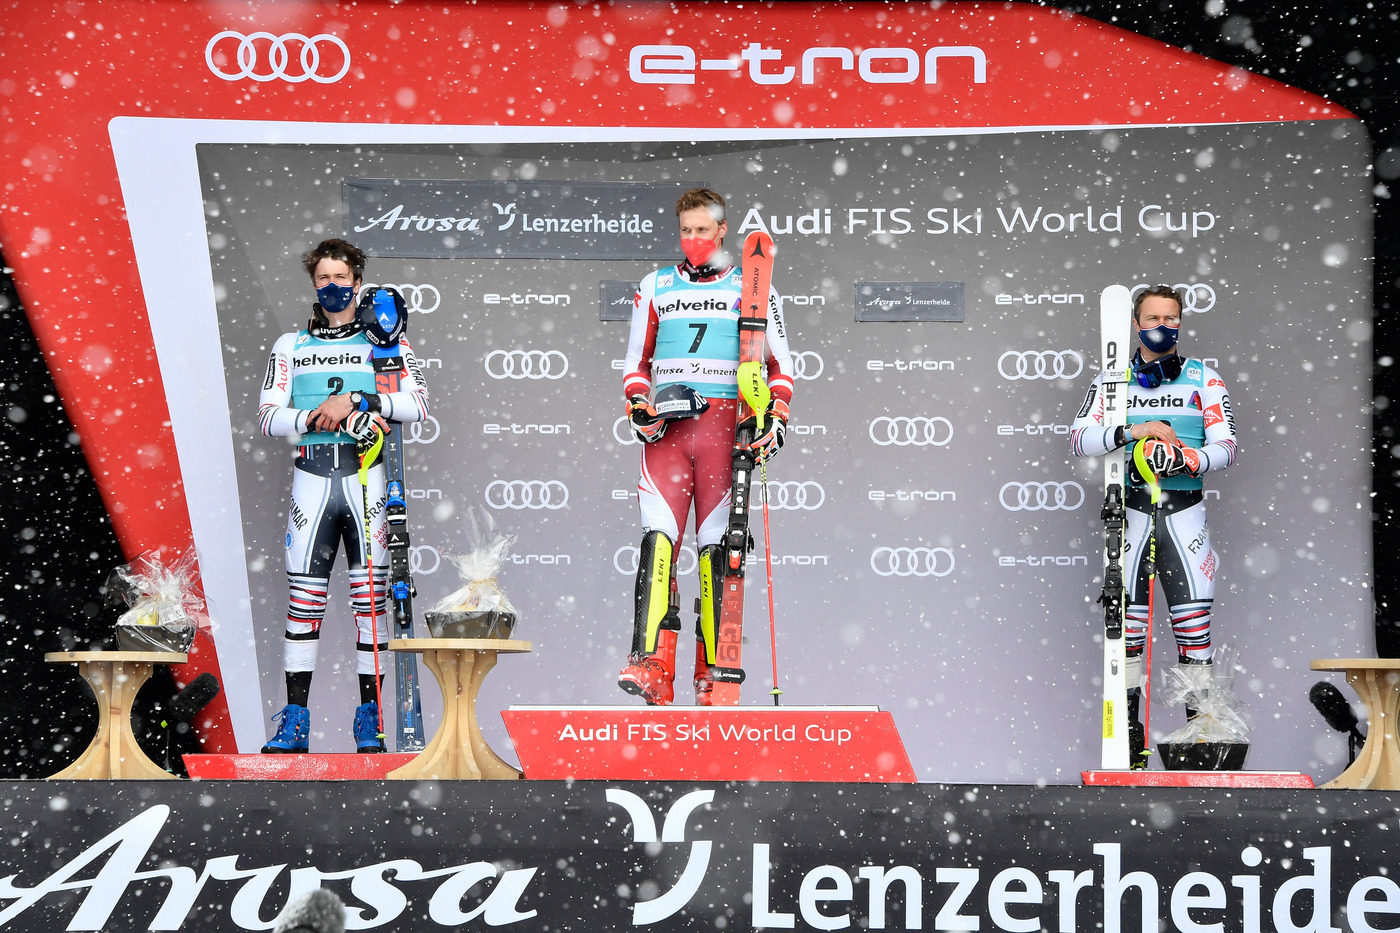 Longines Alpine Skiing Event: Lenzerheide marks the end of a prolific season for Longines' athletes 5